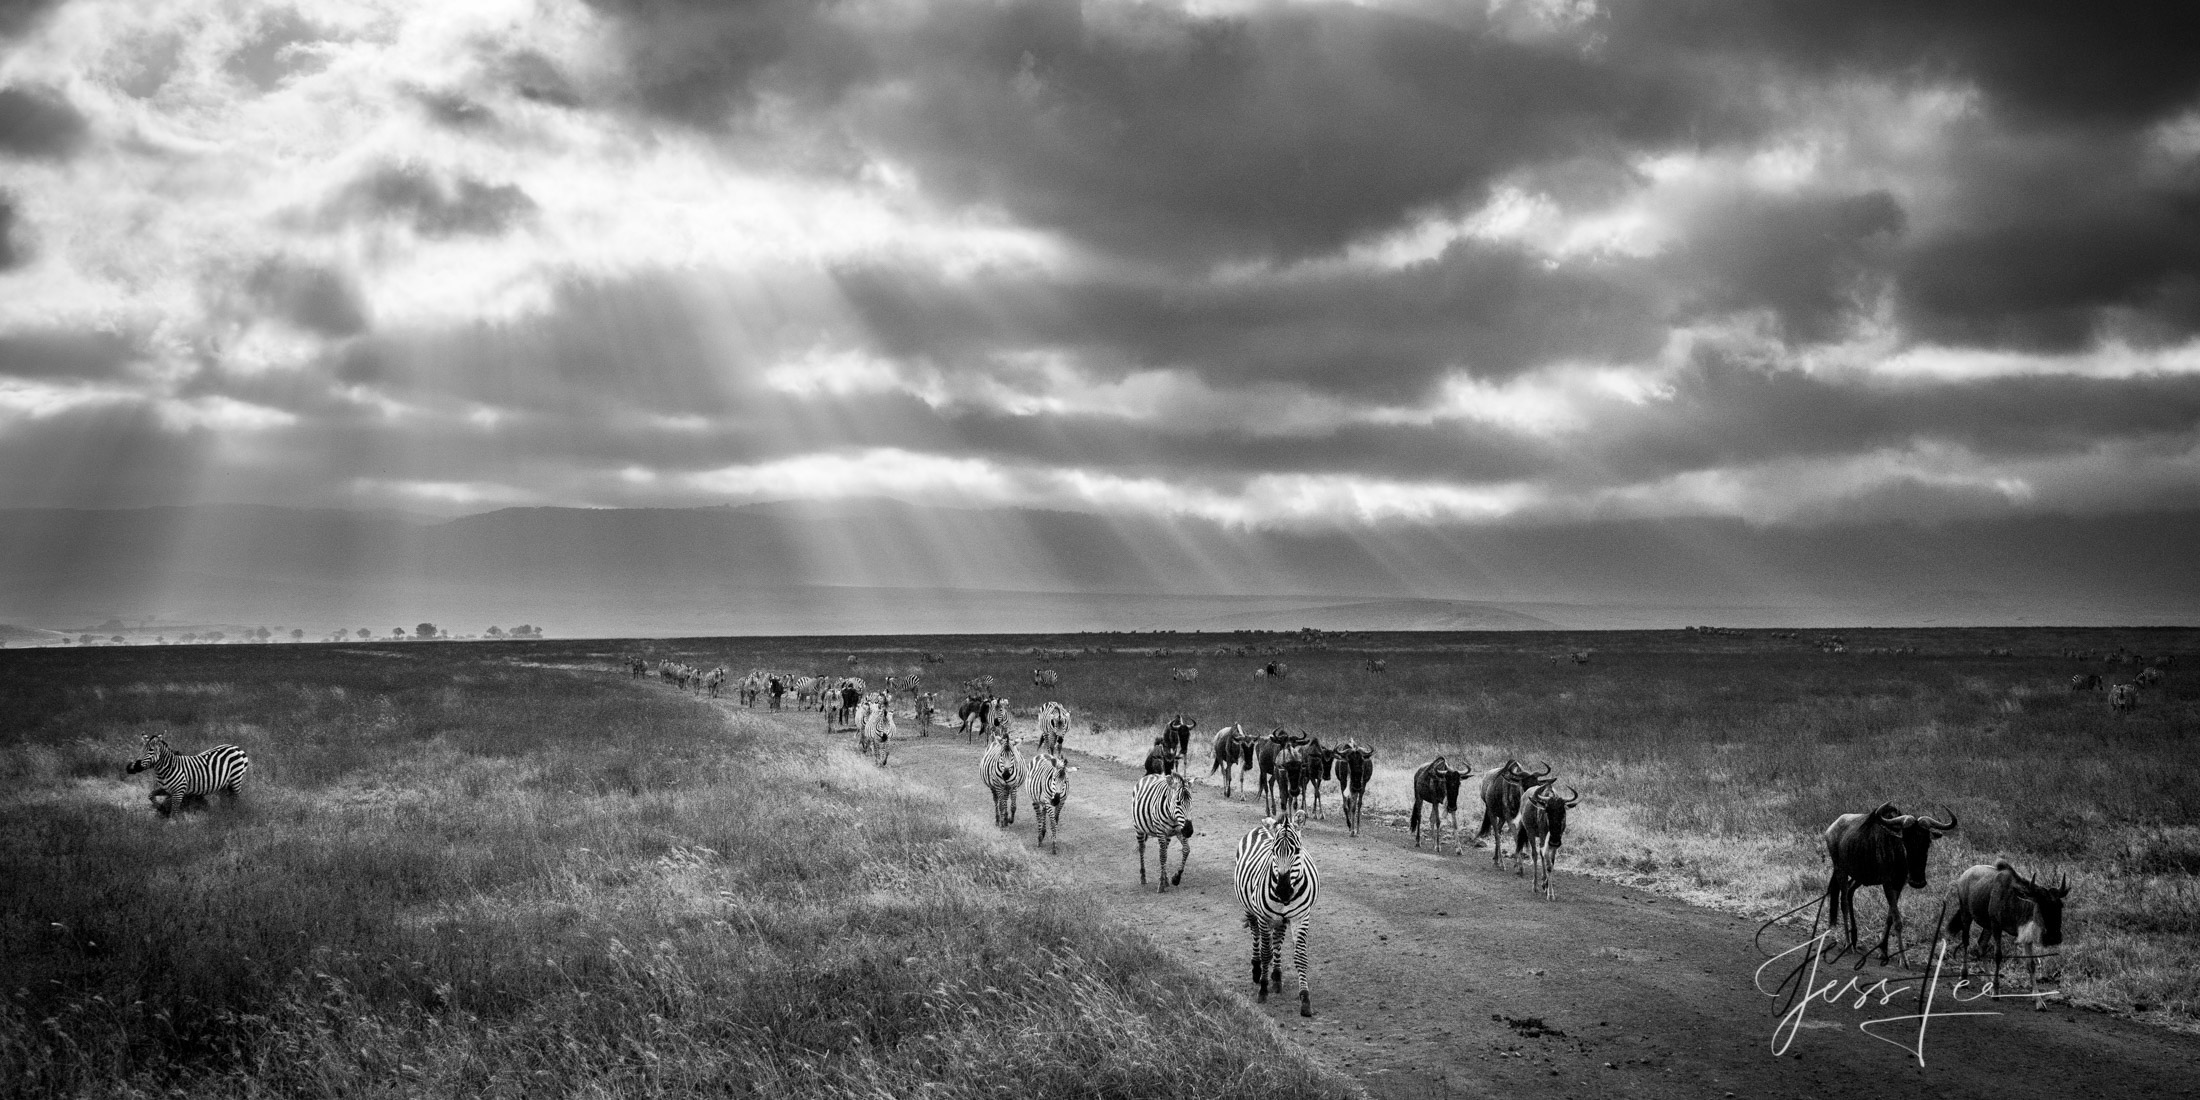 Black and White photo of African Wildlife Migrating